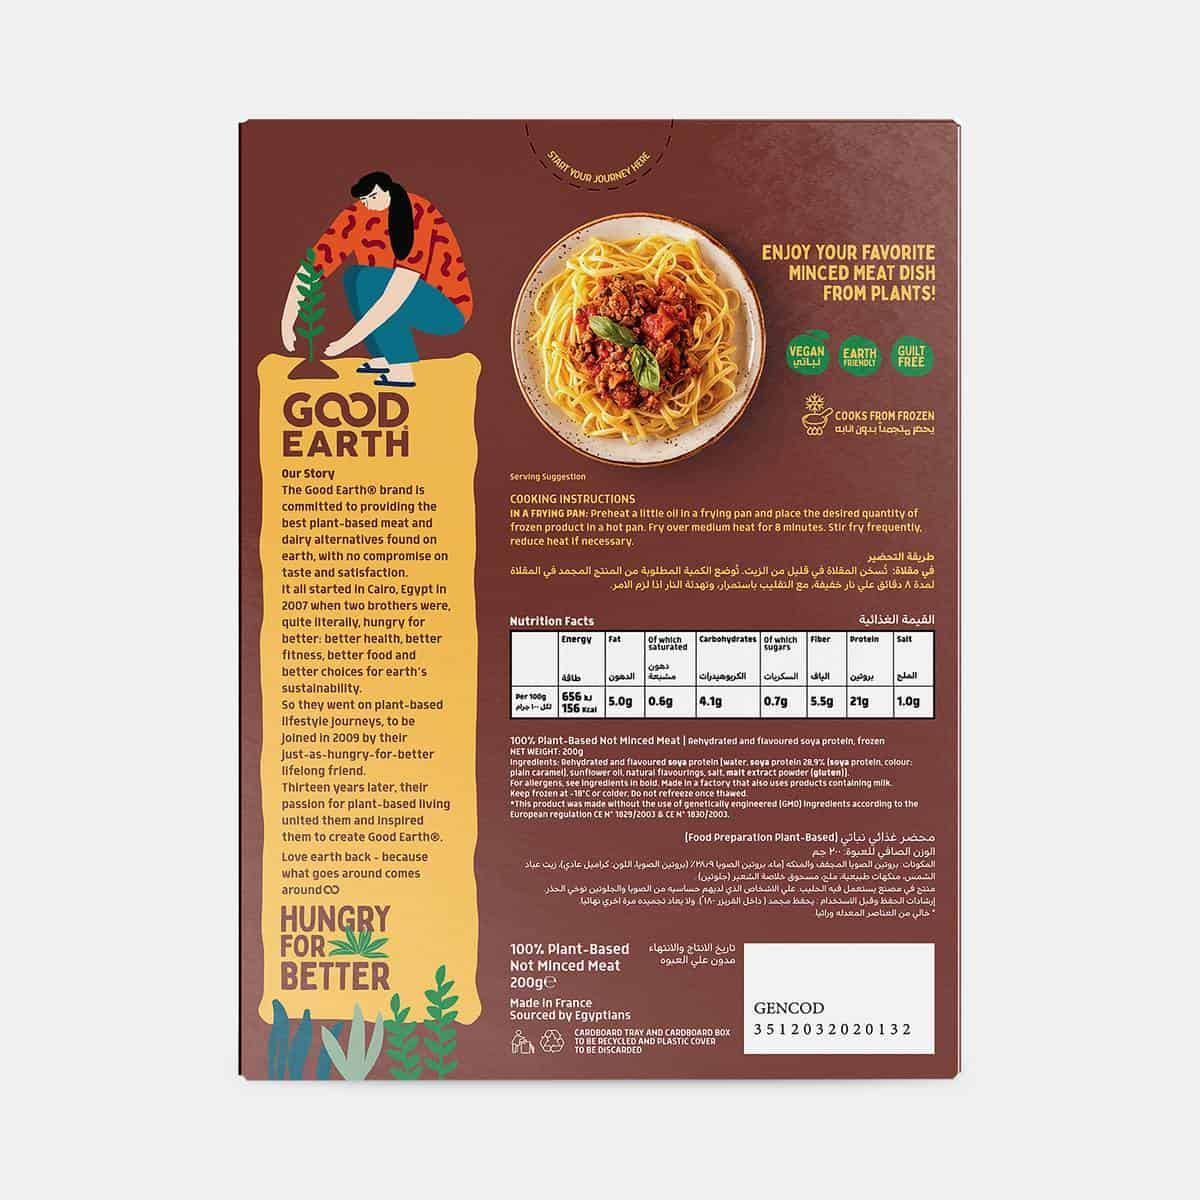 Good Earth Not Minced Meat 200g Pack Back Shot